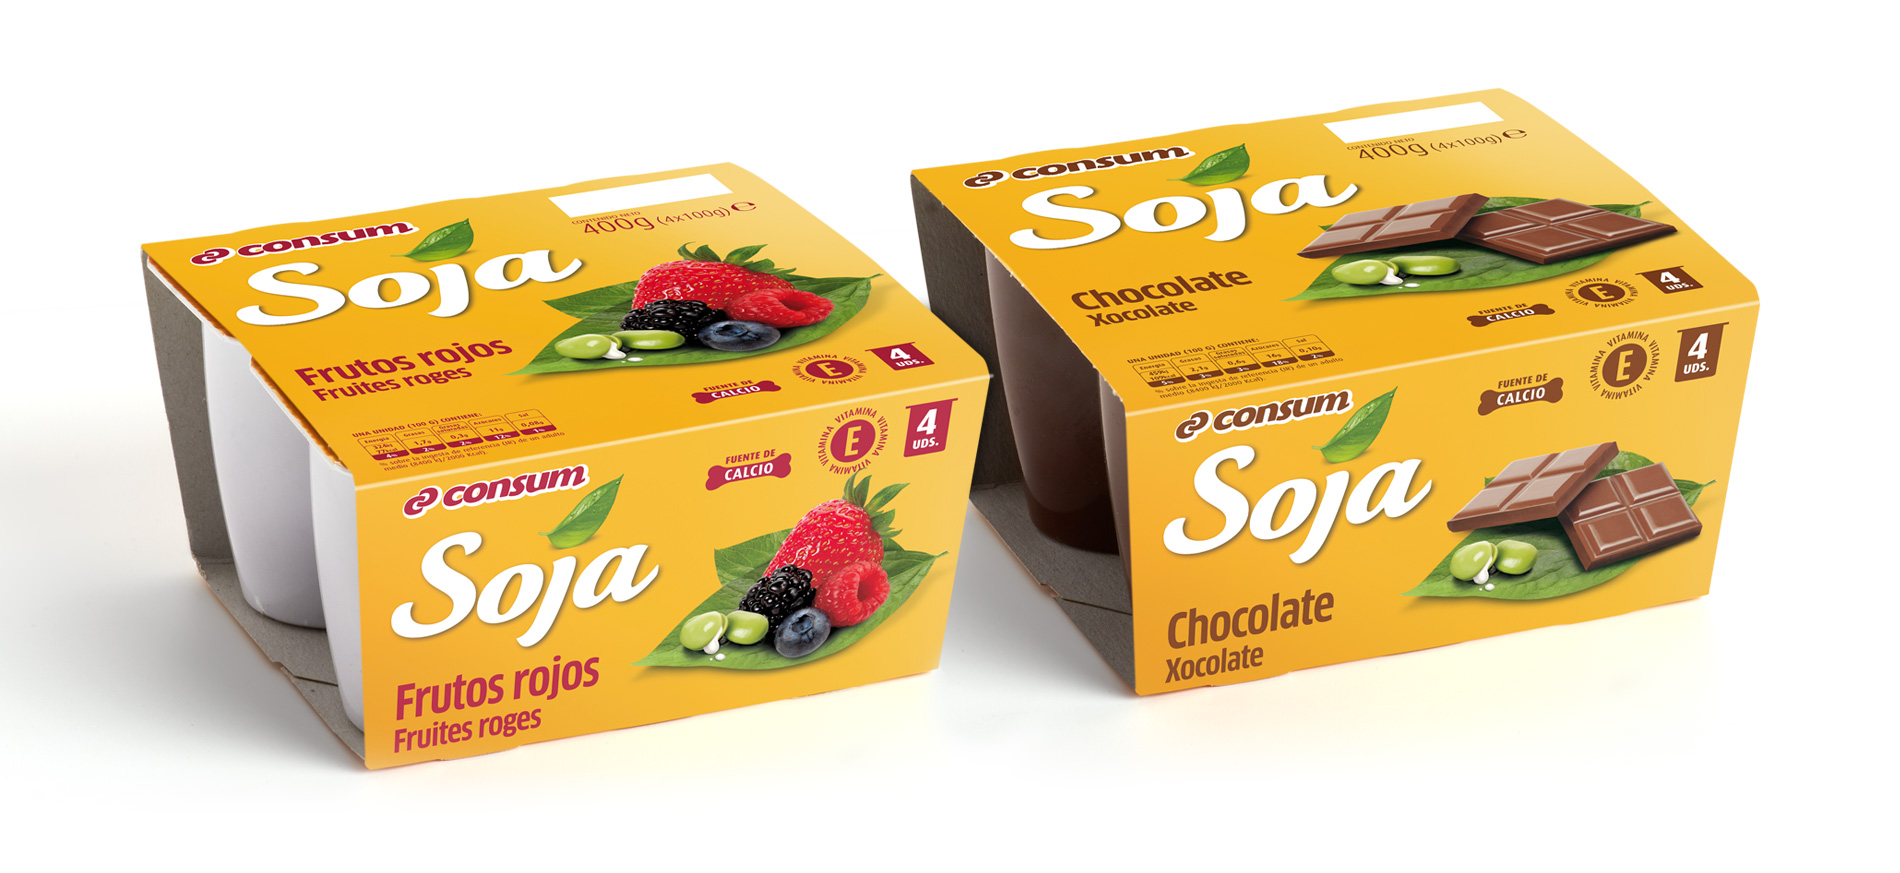 Diseño del Packaging de Yogures de Soja de Supermercados Consum por Puigdemont Roca Design Agency